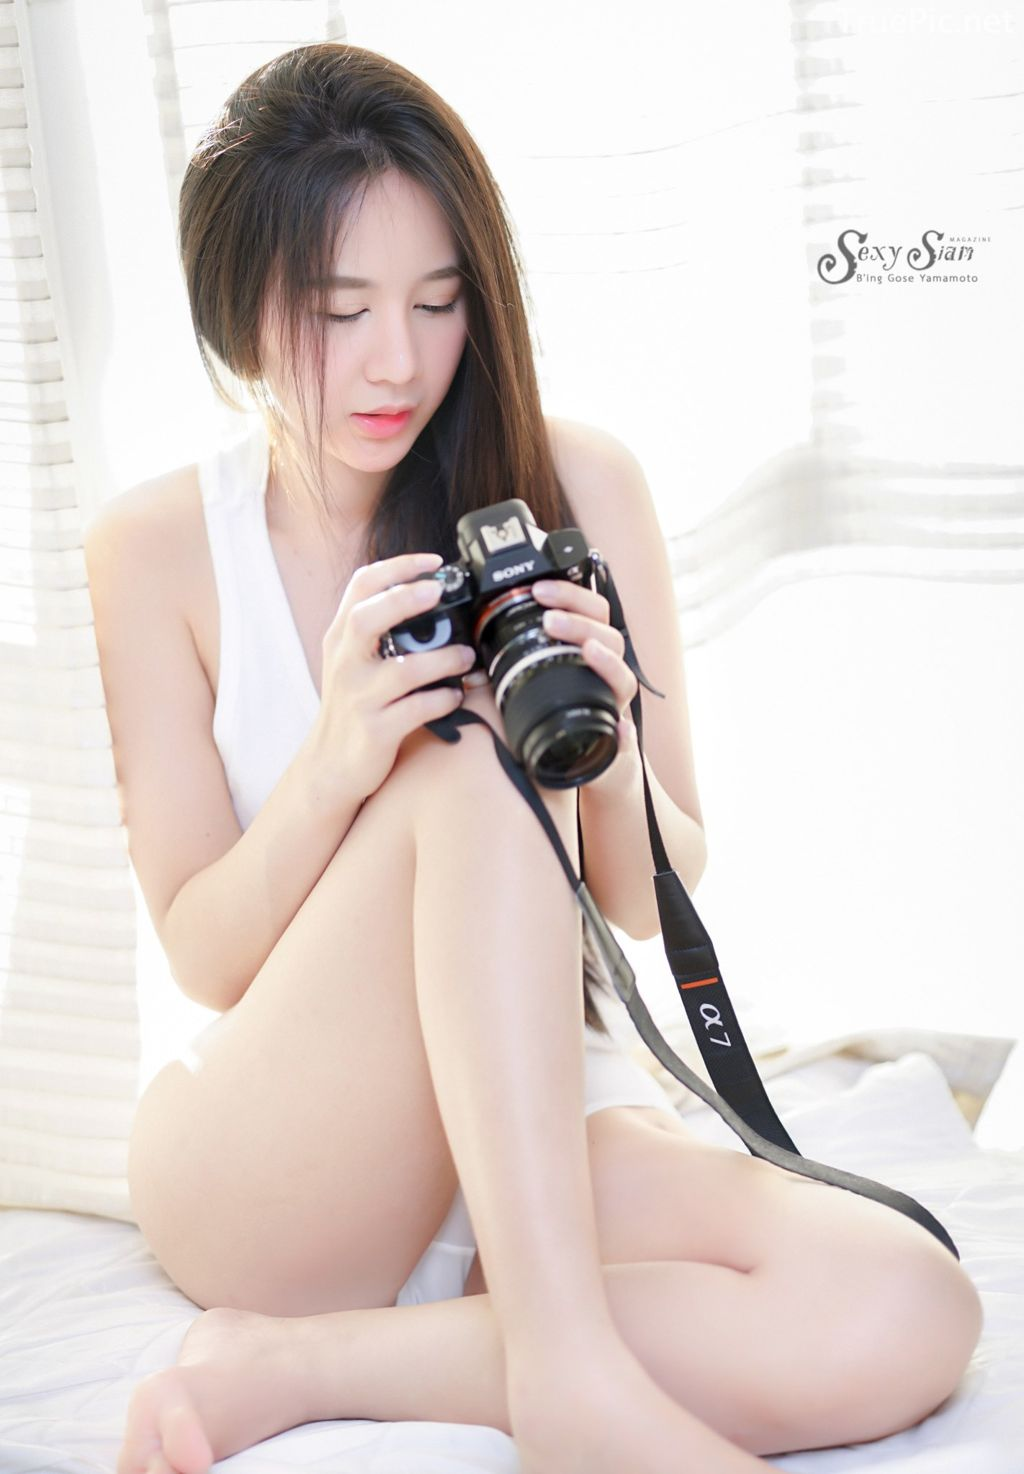 Thailand Sexy Girl - จิดาภา ตั้งสุขสบายดี (Pockyming) - Snack Lays for lazy day - TruePic.net - Picture 10